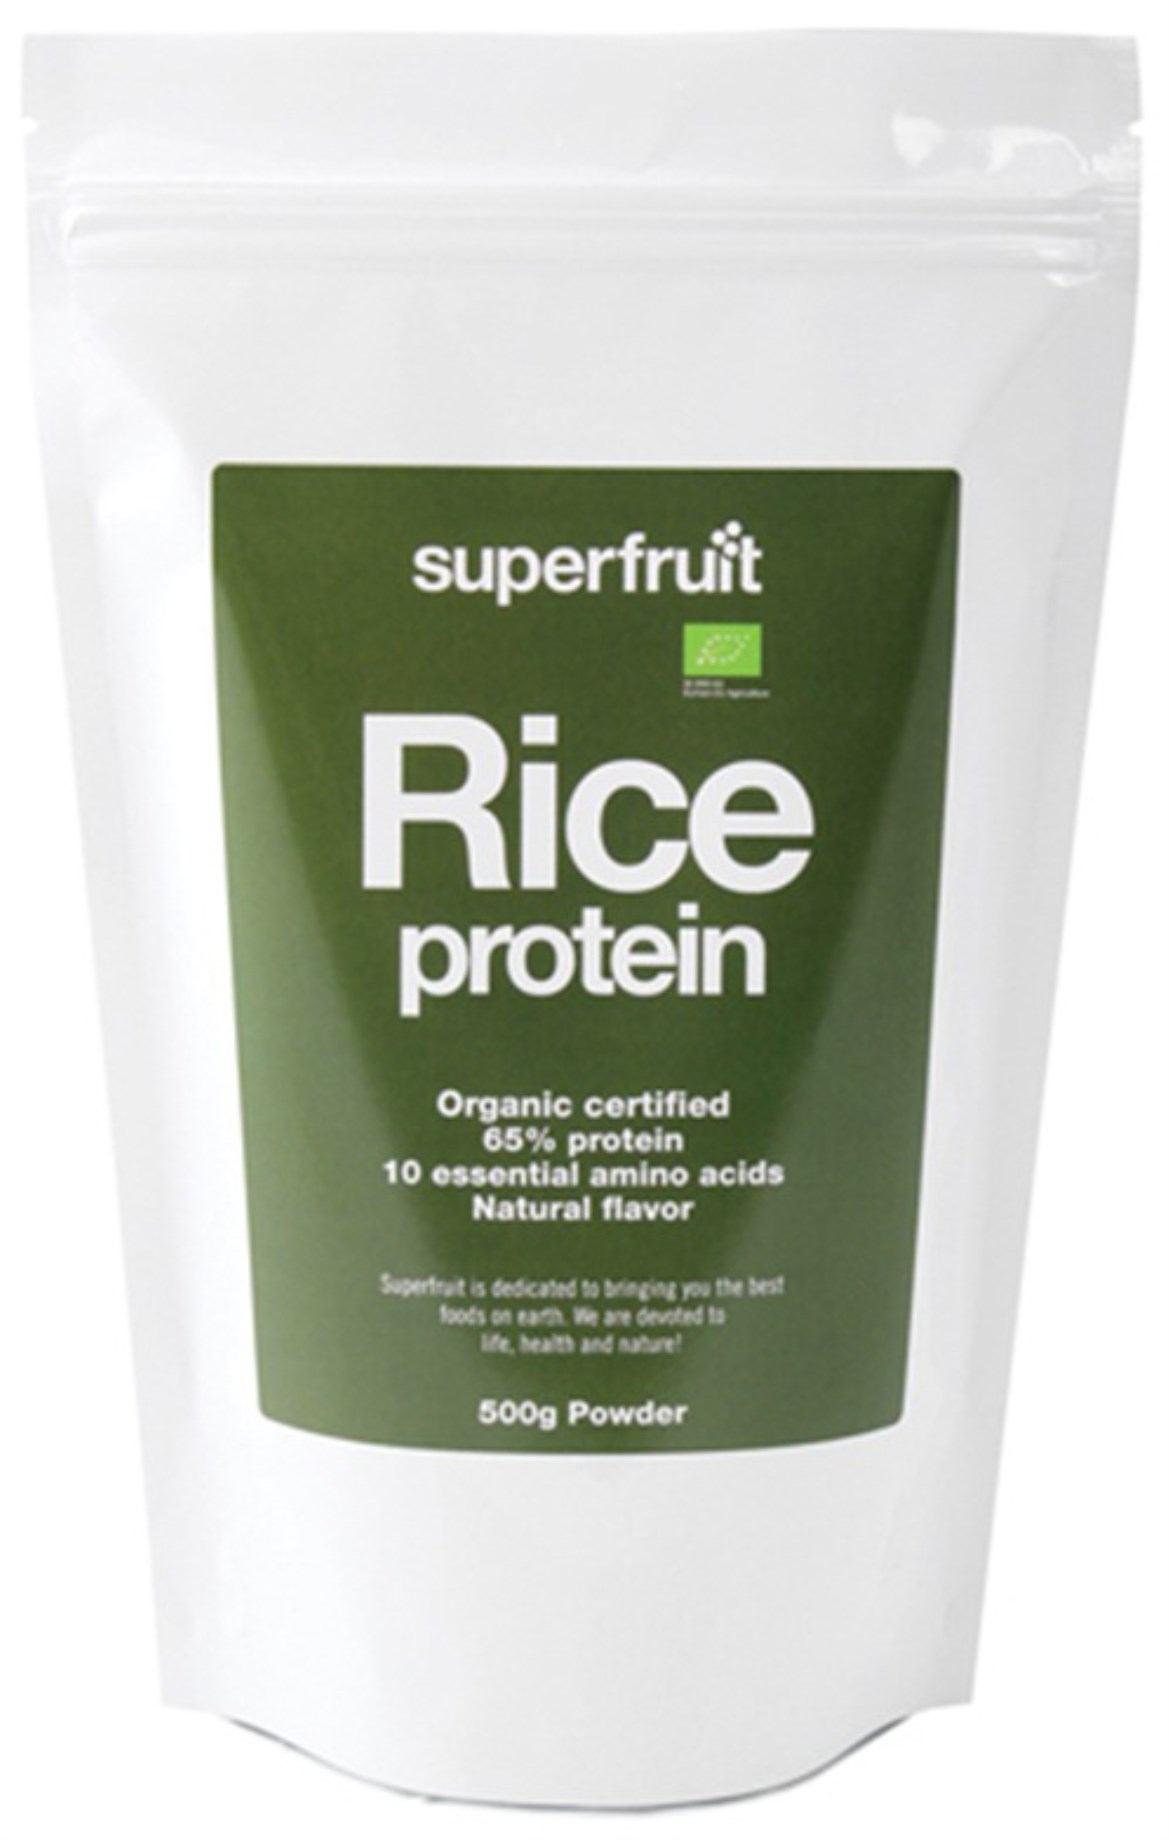 Superfruit Risprotein,  - Superfruit